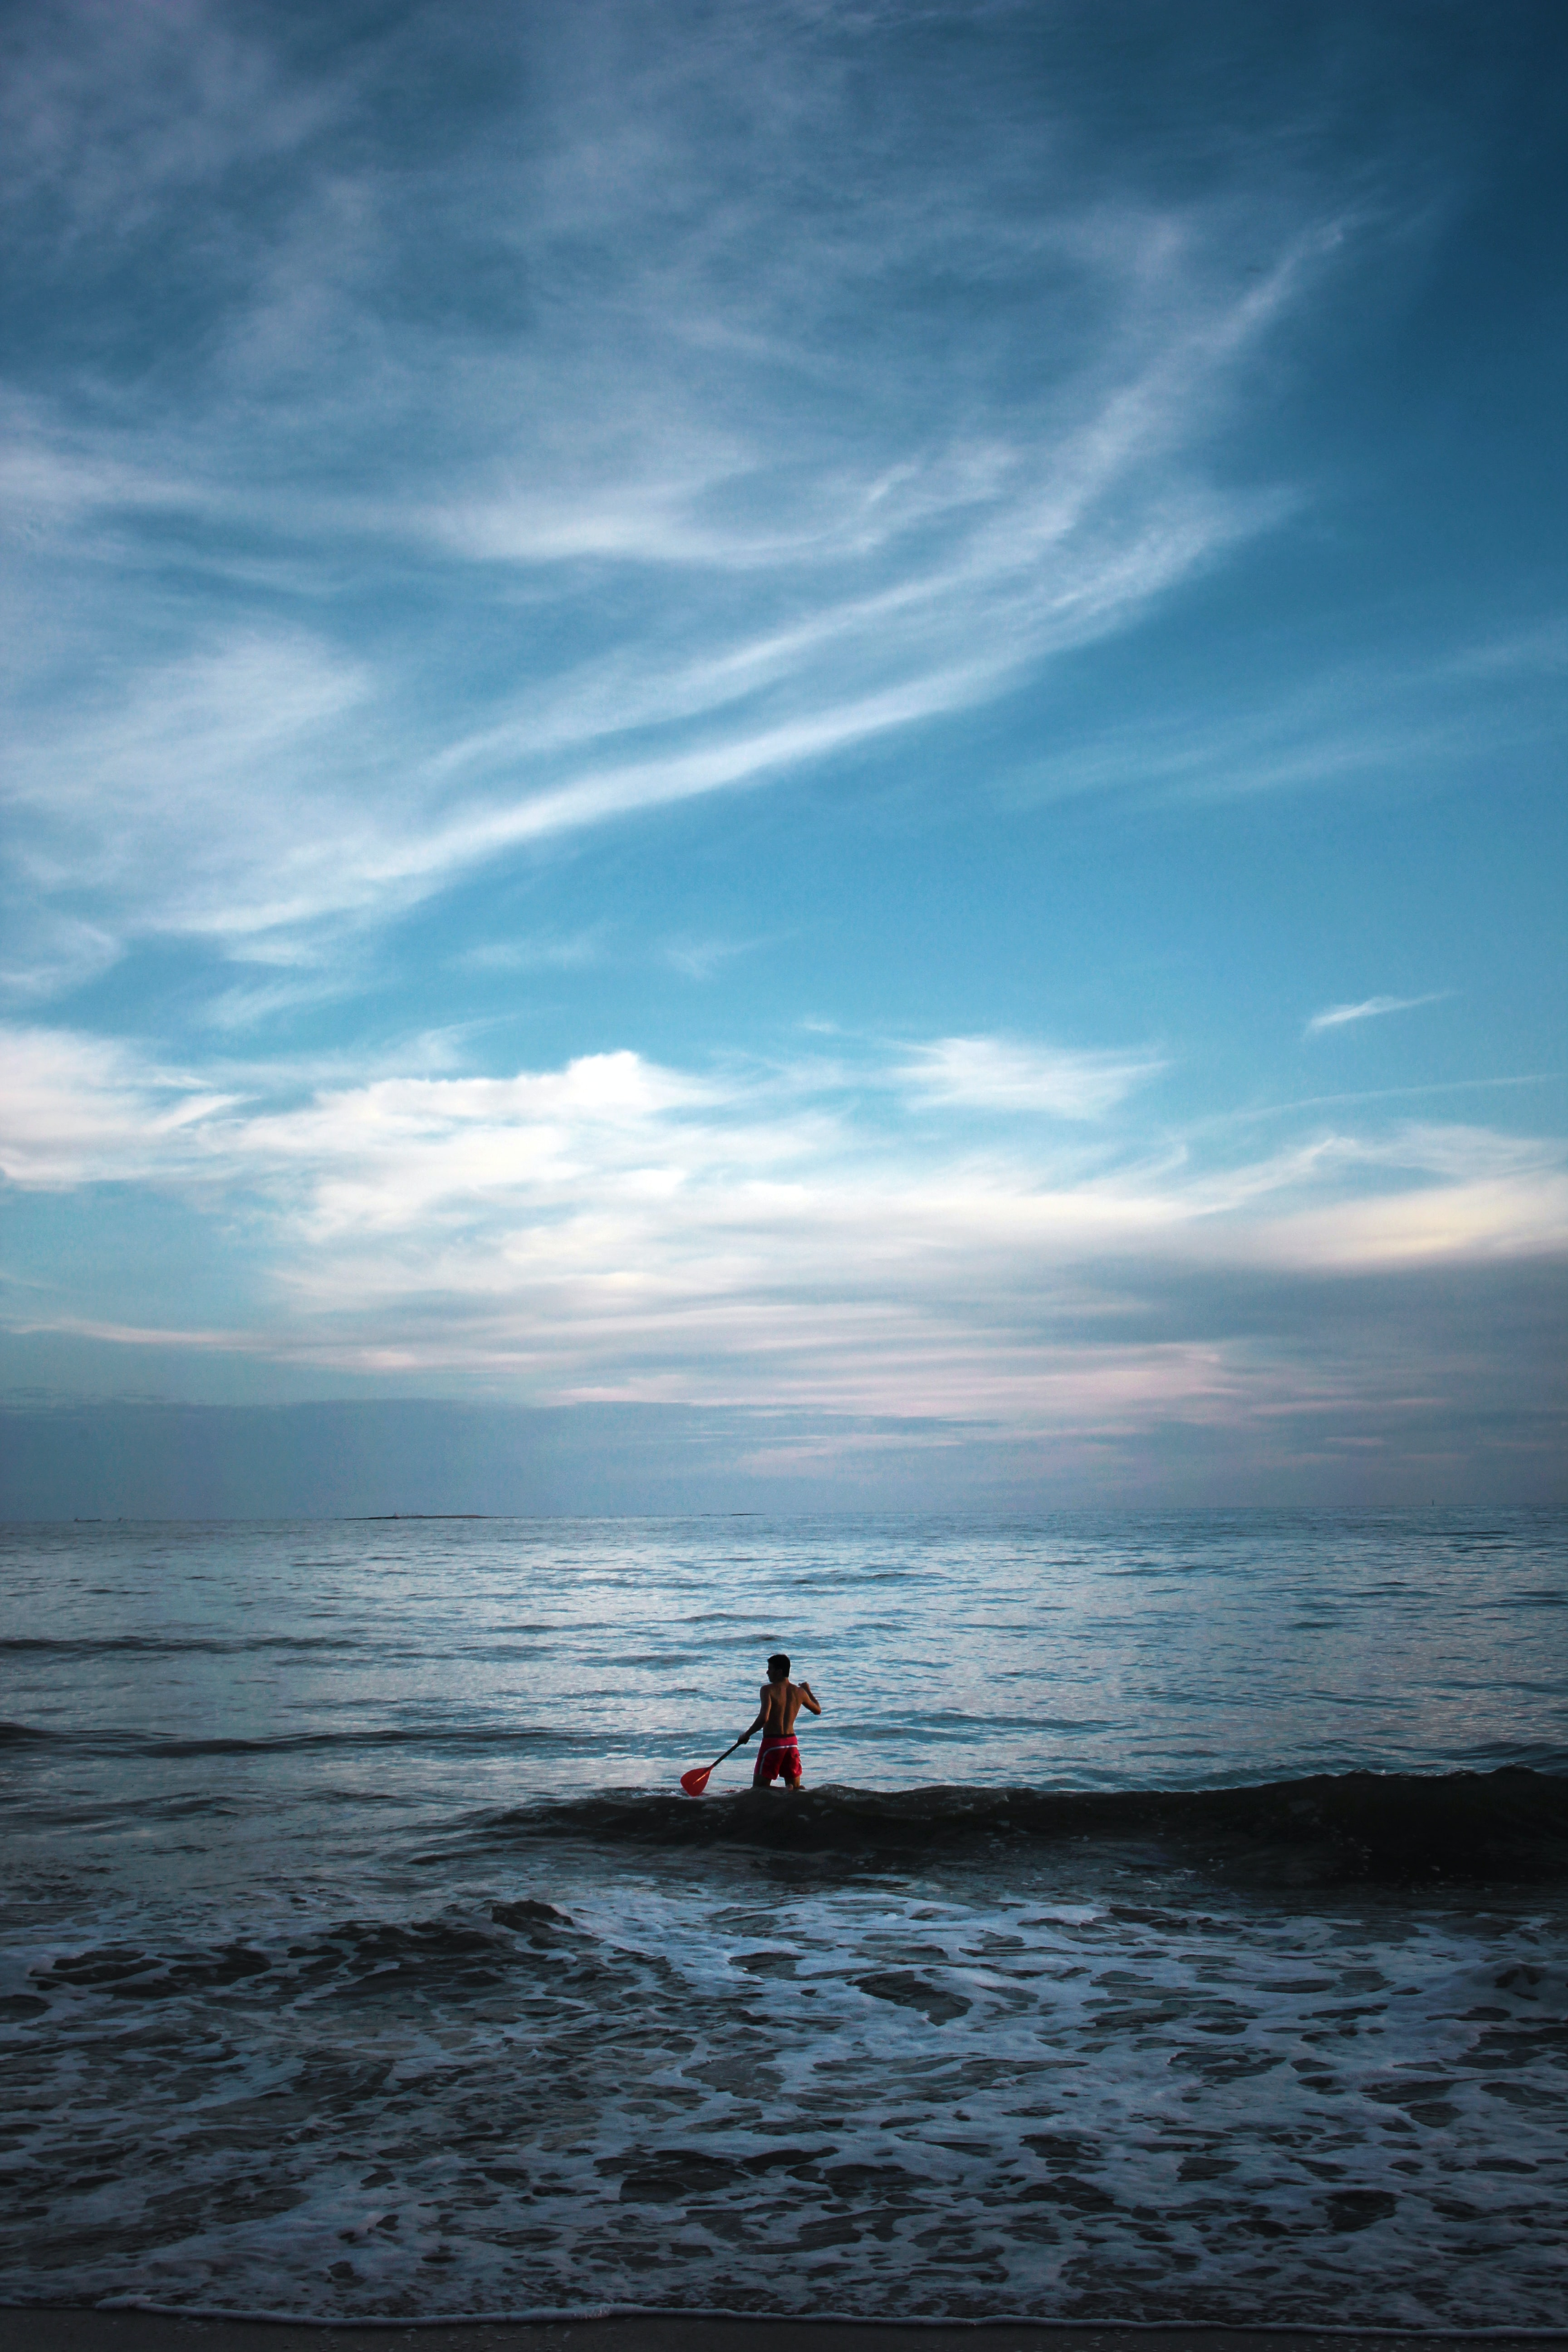 A paddleboarder on a calm sea, beneath a blue dusky evening sky